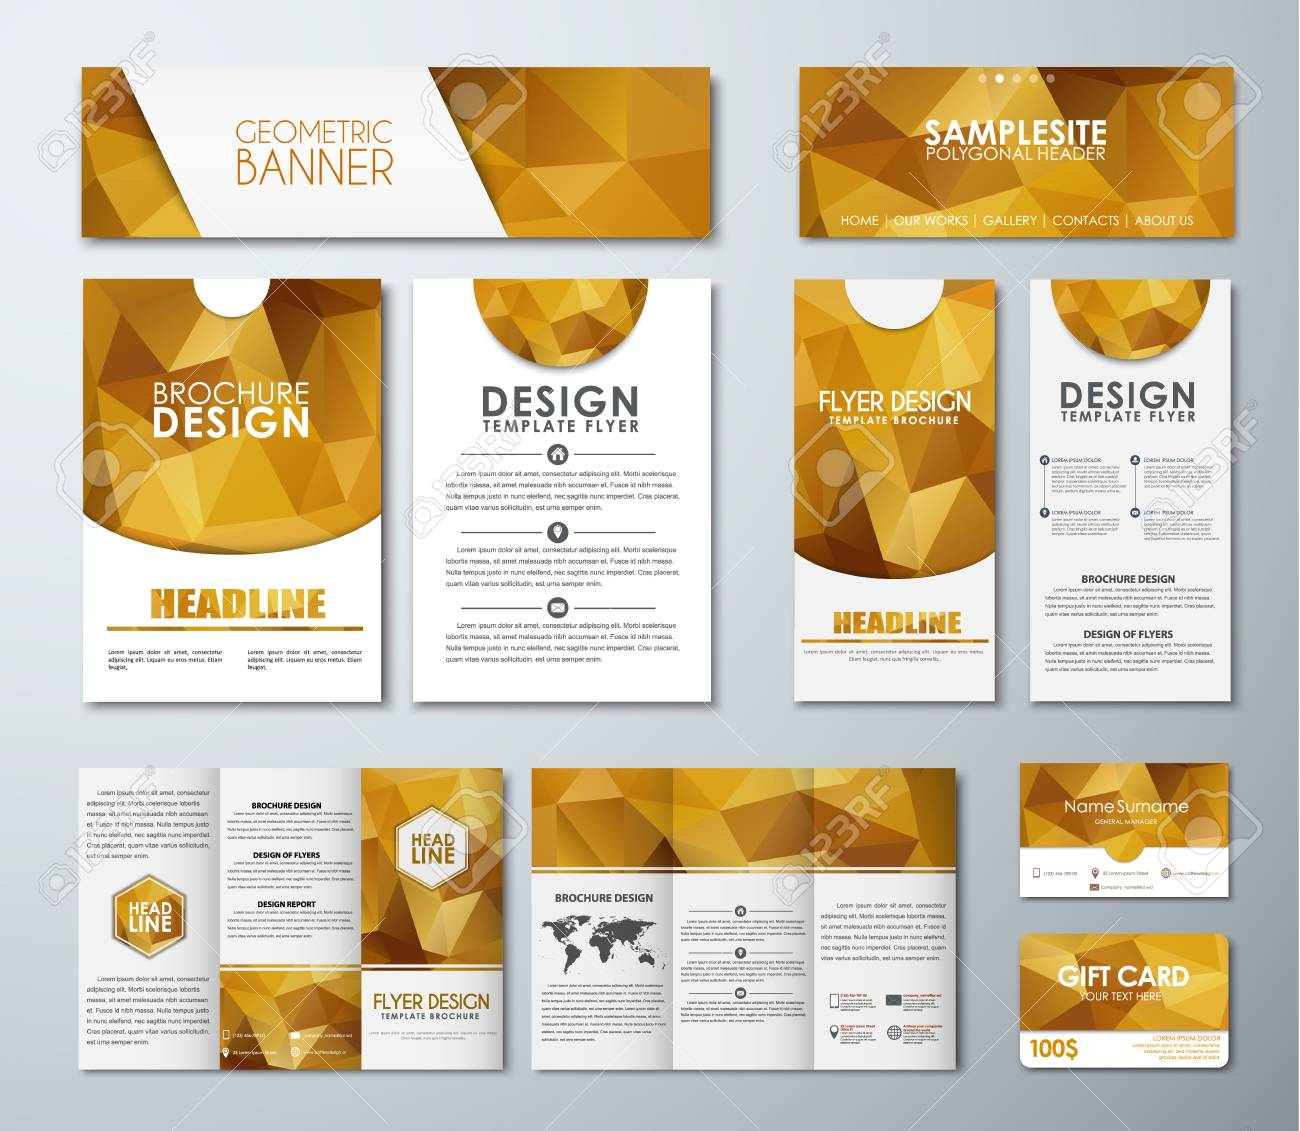 Templates Polygonal Golden Banners, Flyers, Brochures, Gift Cards ...